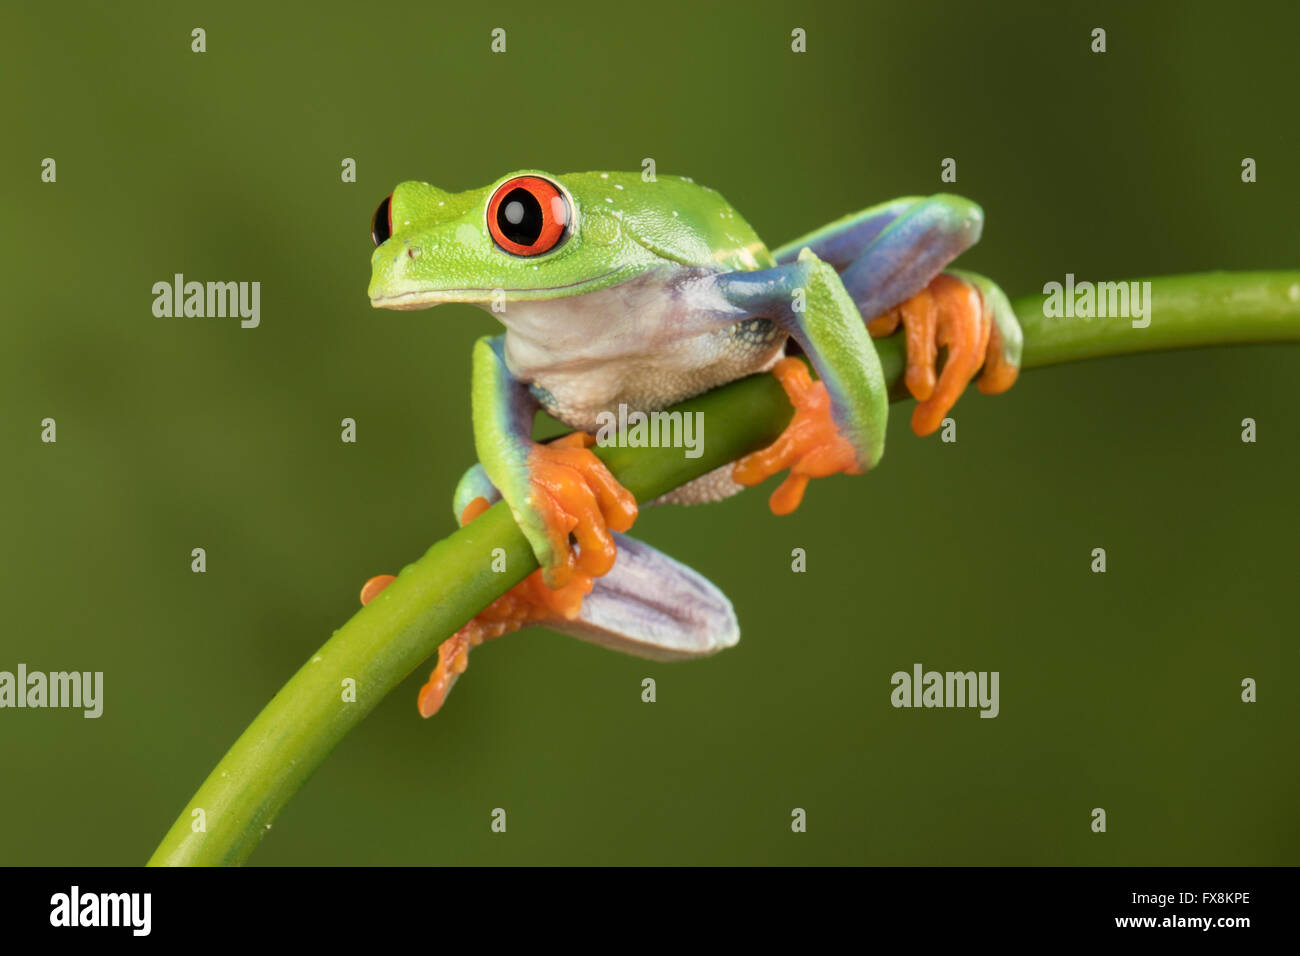 Red Eyed Tree Frog Sitting on a bamboo branch with green background - studio image Stock Photo